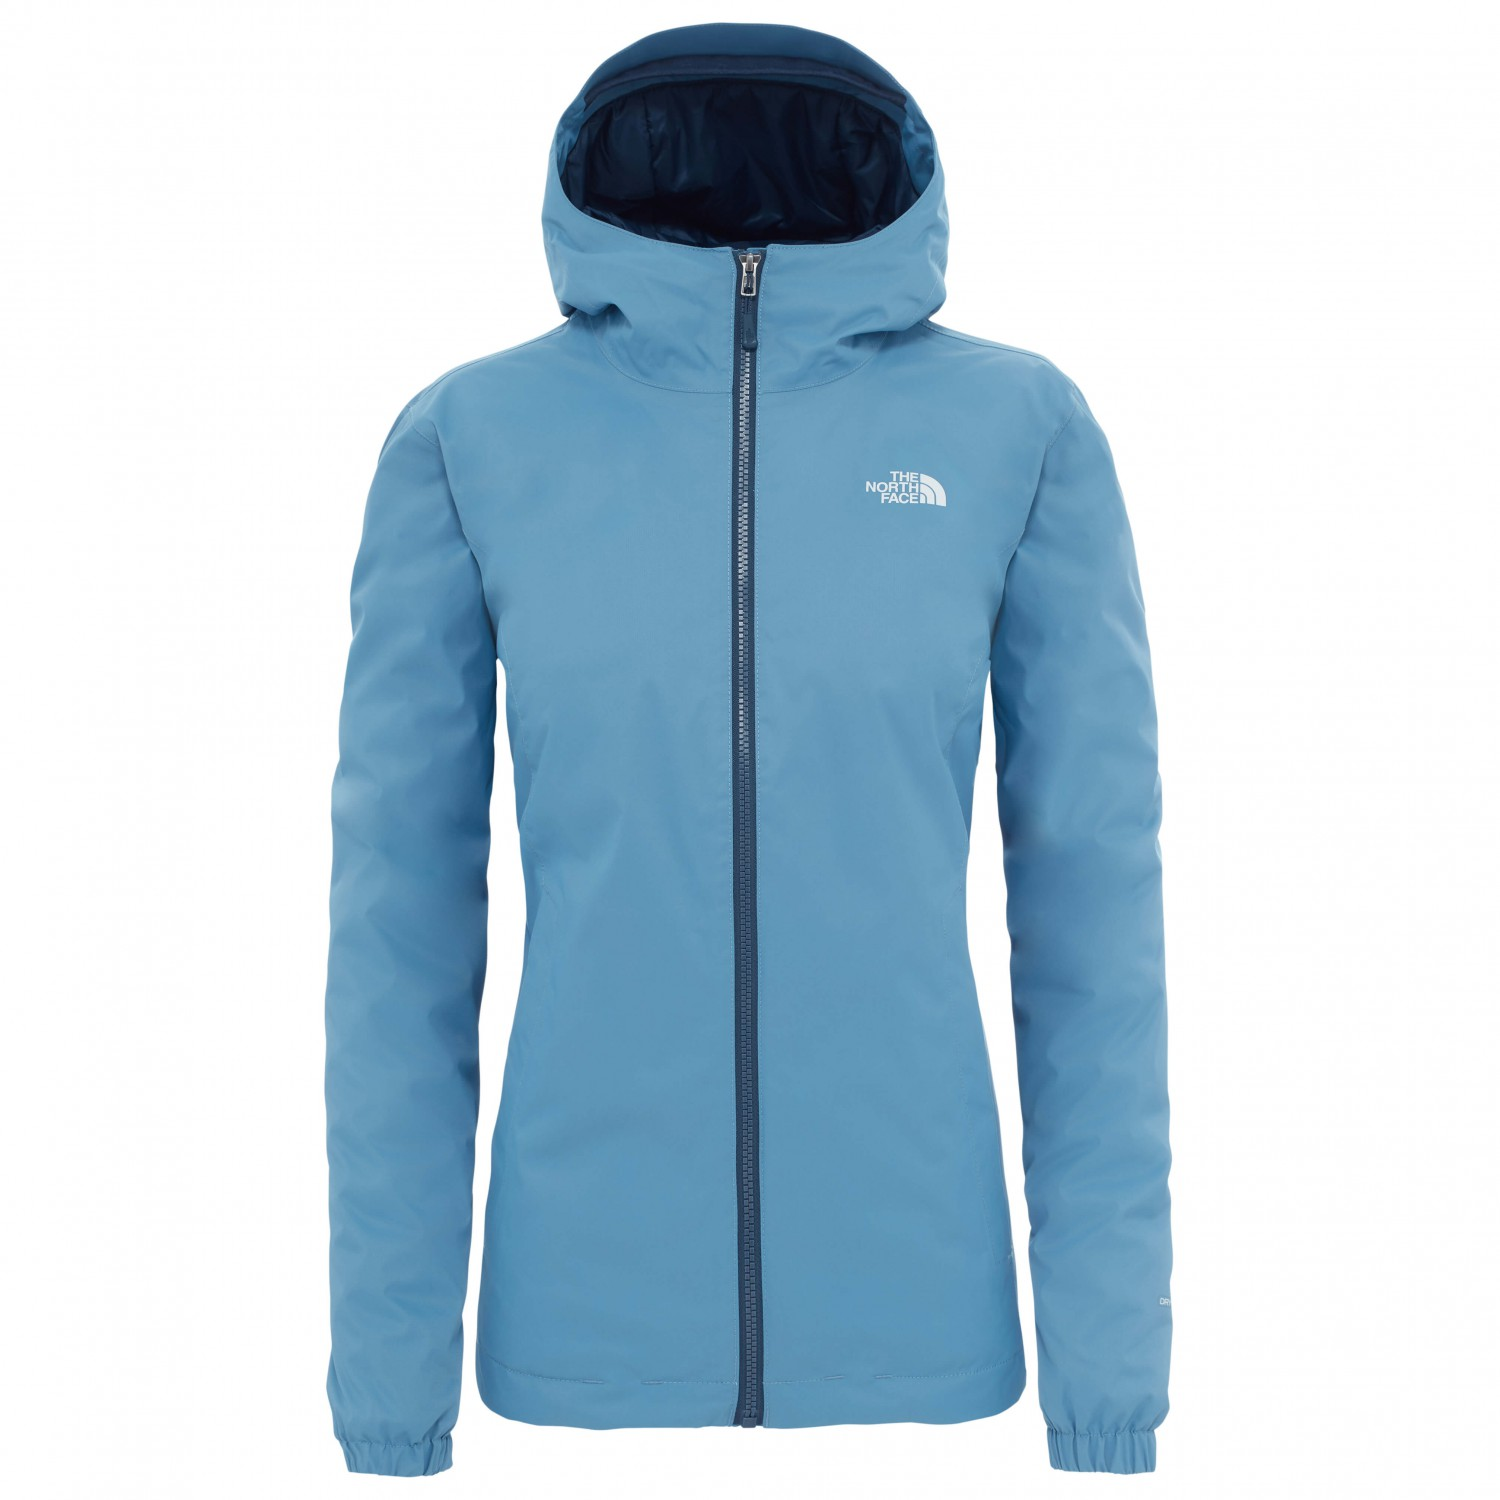 Women's quest insulated jacket